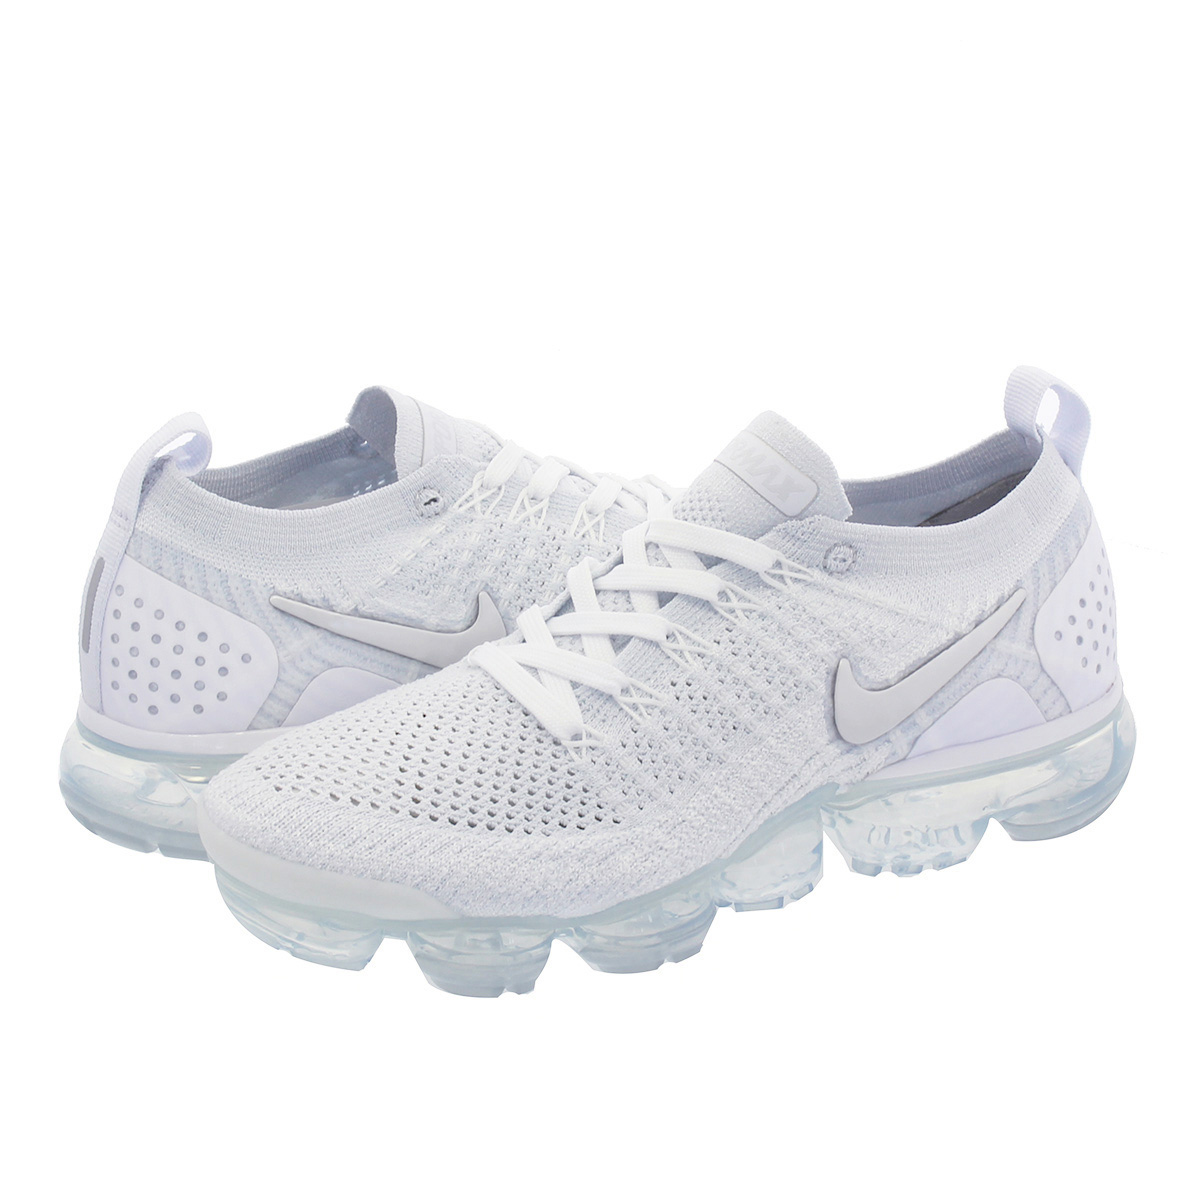 new product 31bac 813eb NIKE WMNS AIR VAPORMAX FLYKNIT 2 Nike women vapor max fried food knit  WHITE/VAST GREY/FOOTBALL GREY 942,843-105